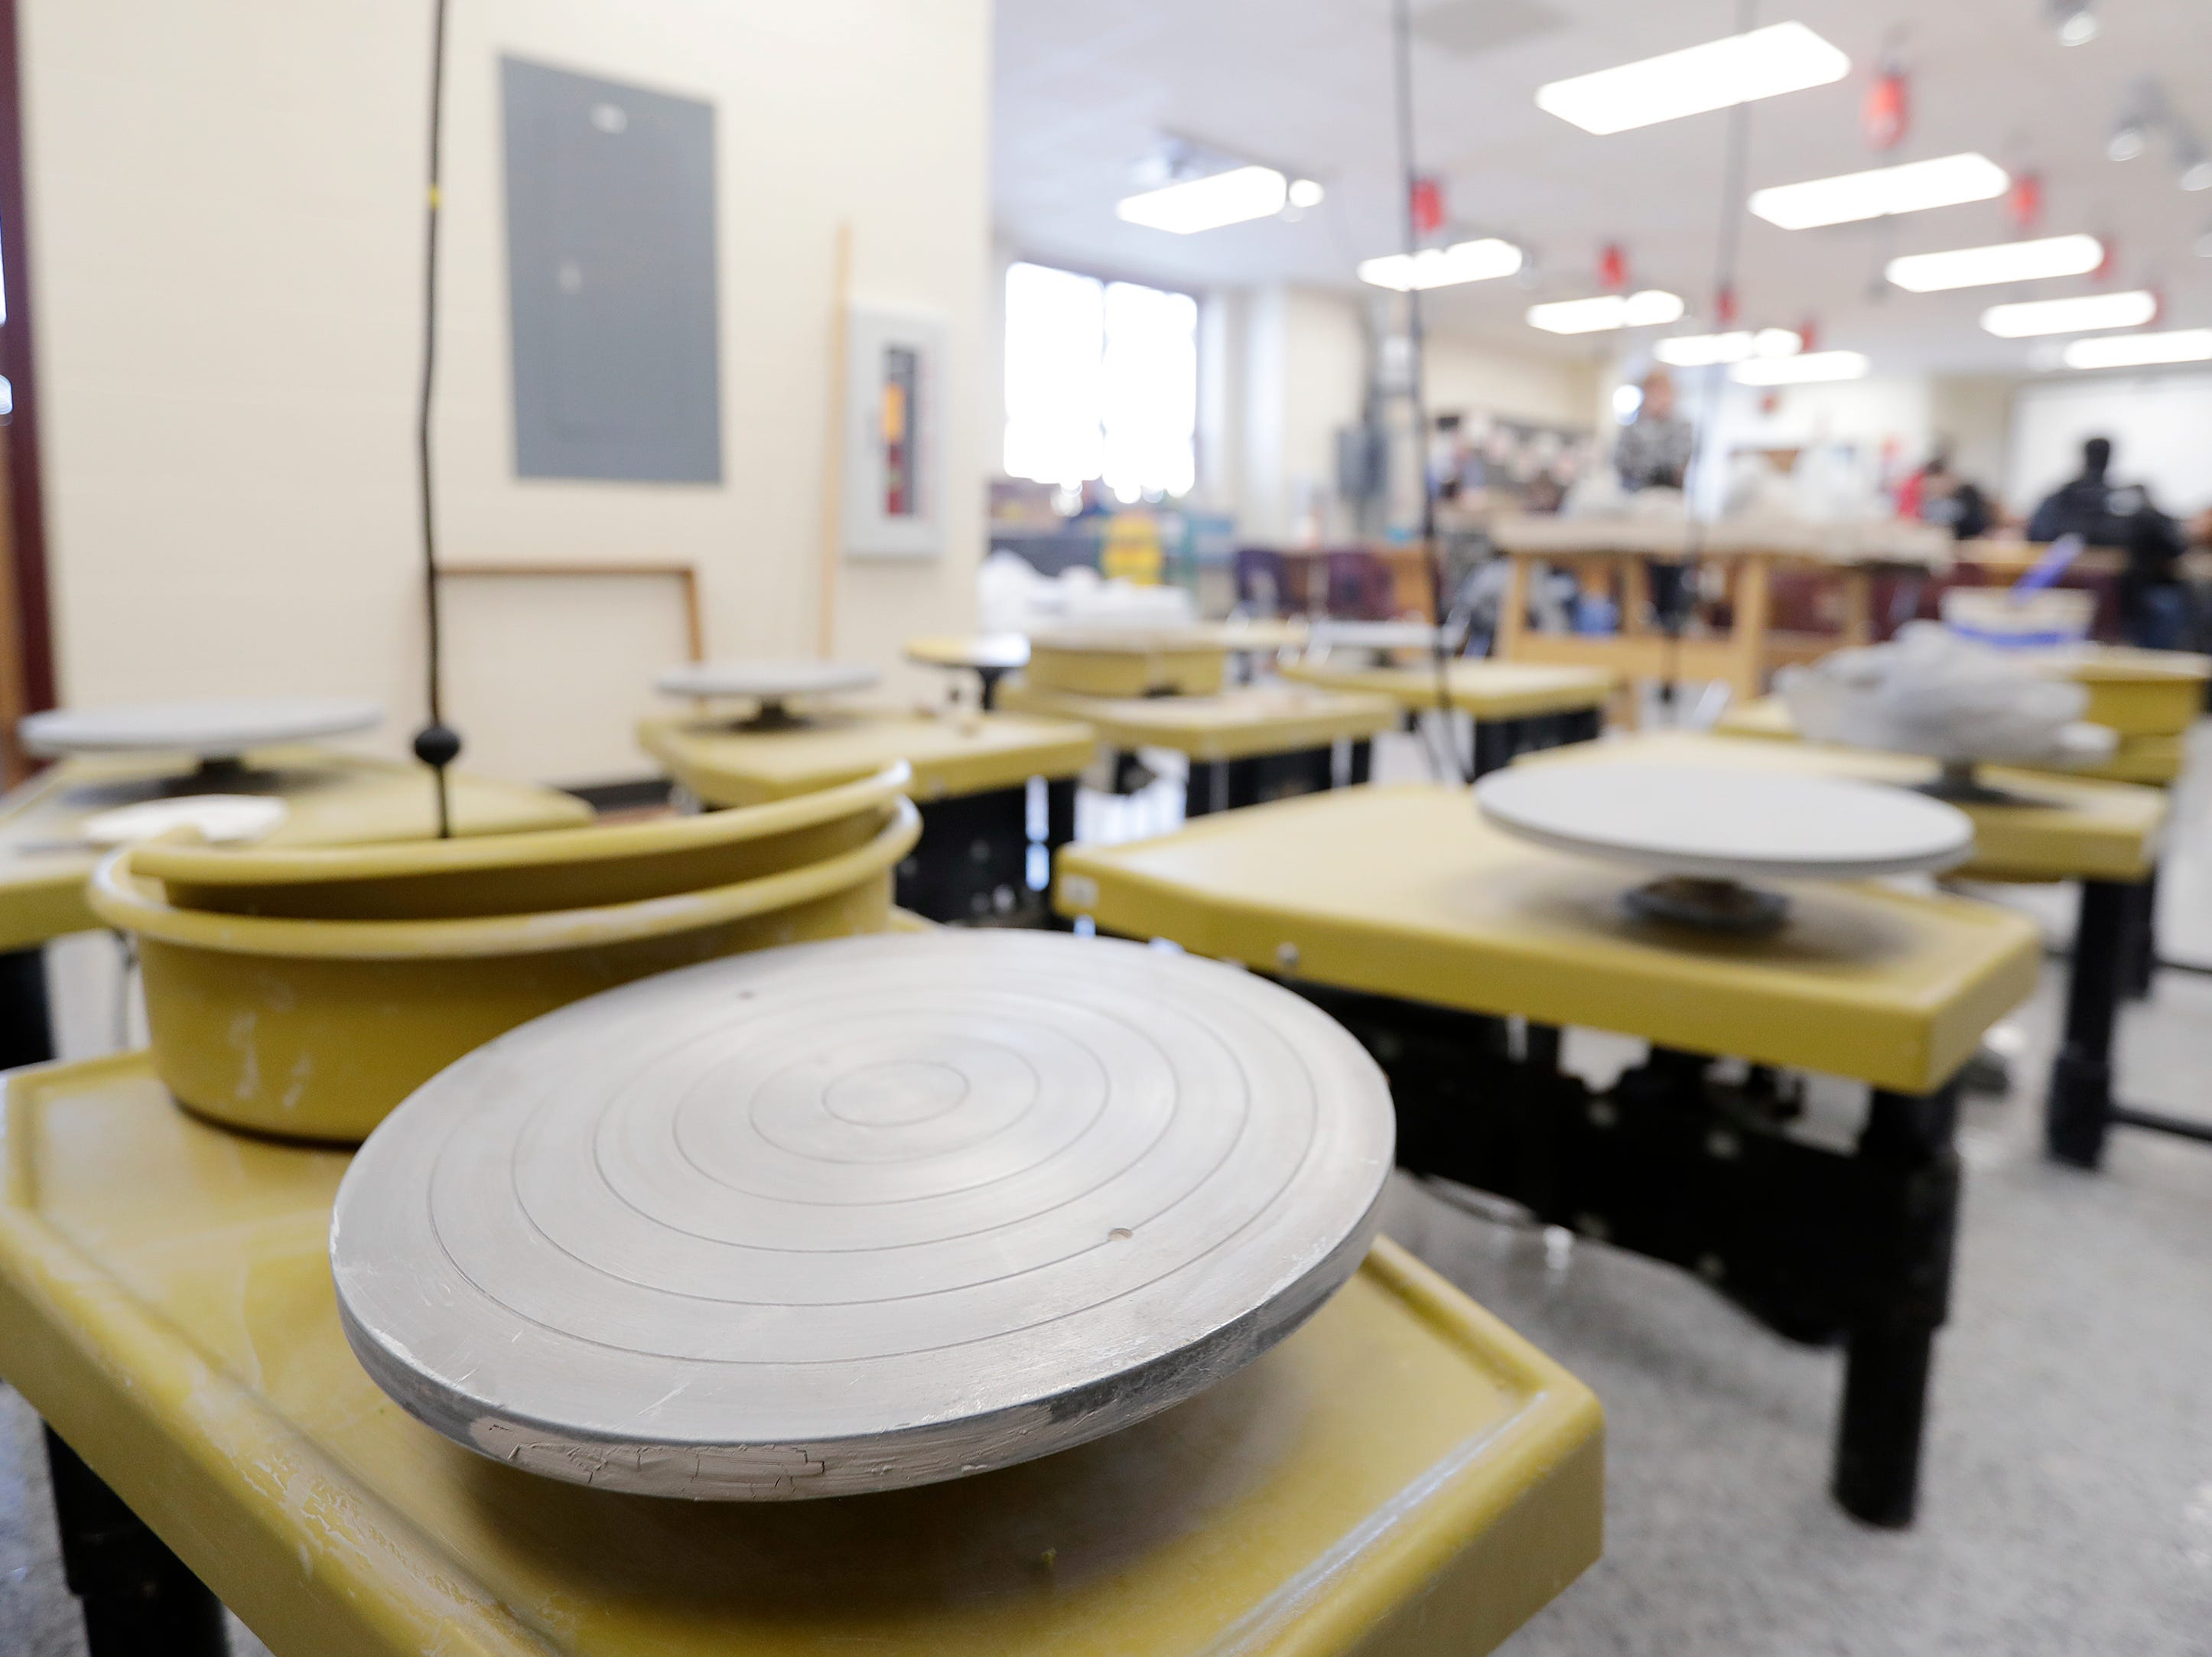 Clay wheels in a remodeled art classroom at East High School are shown on Wednesday, February 13, 2019 in Green Bay, Wis.